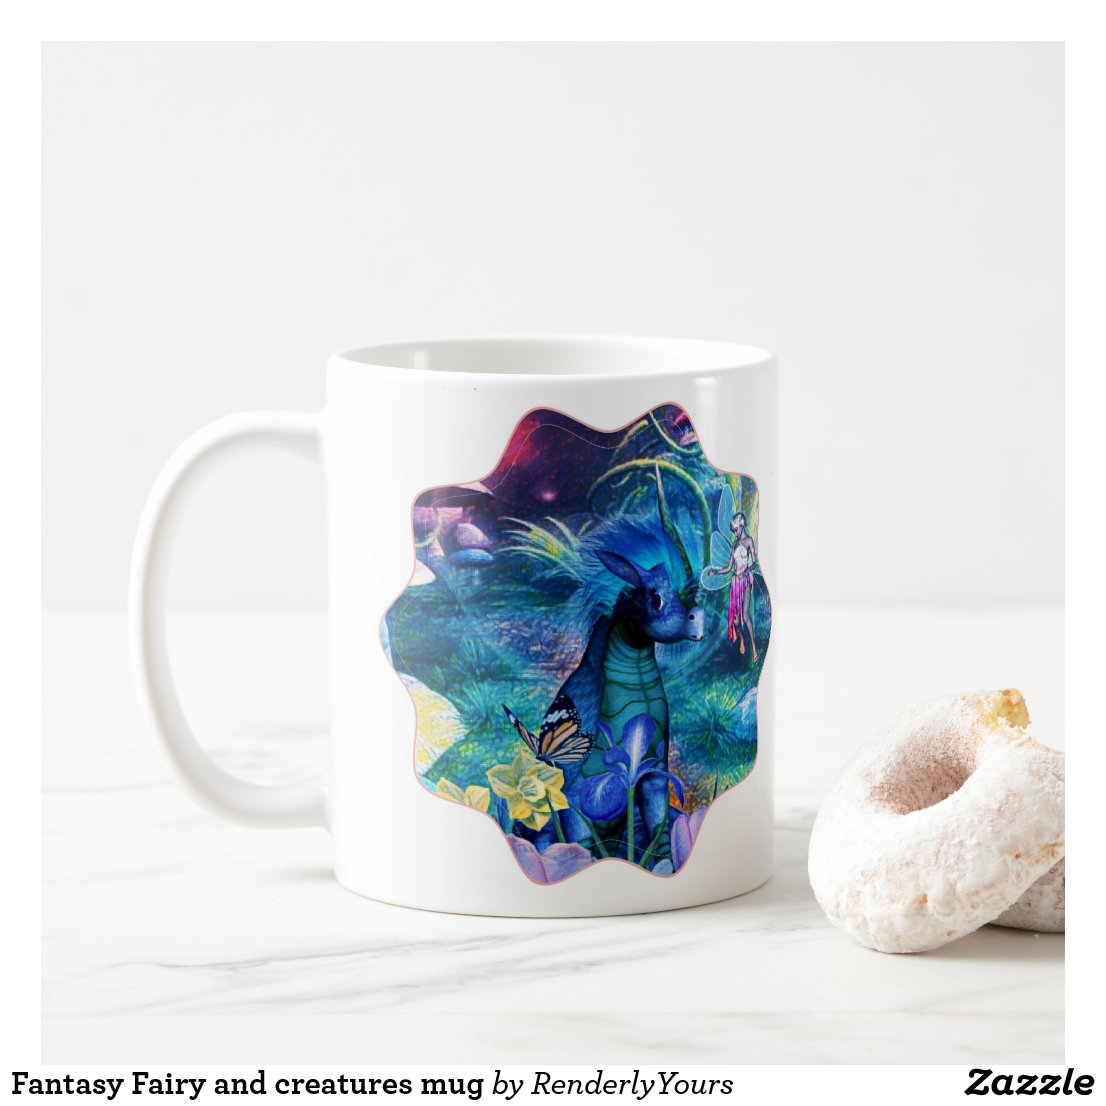 Fantasy Fairy and creatures mug